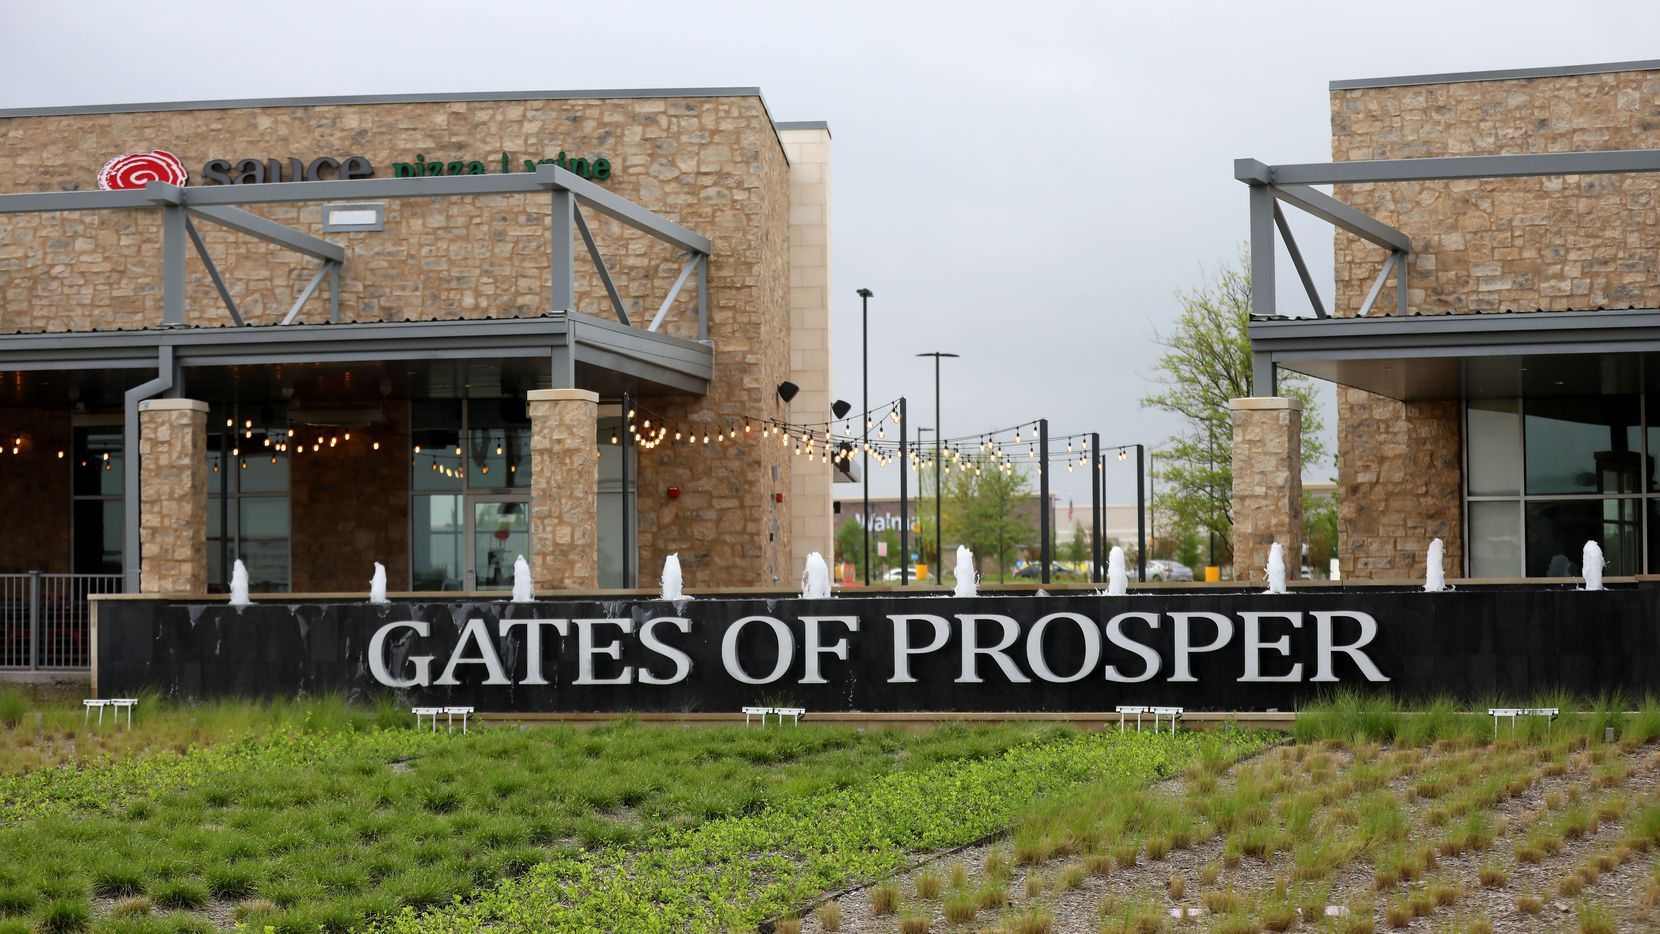 Blue Star Land and Lincoln Property Co. are opening the second phase of the Gates of Prosper shopping center in Prosper.